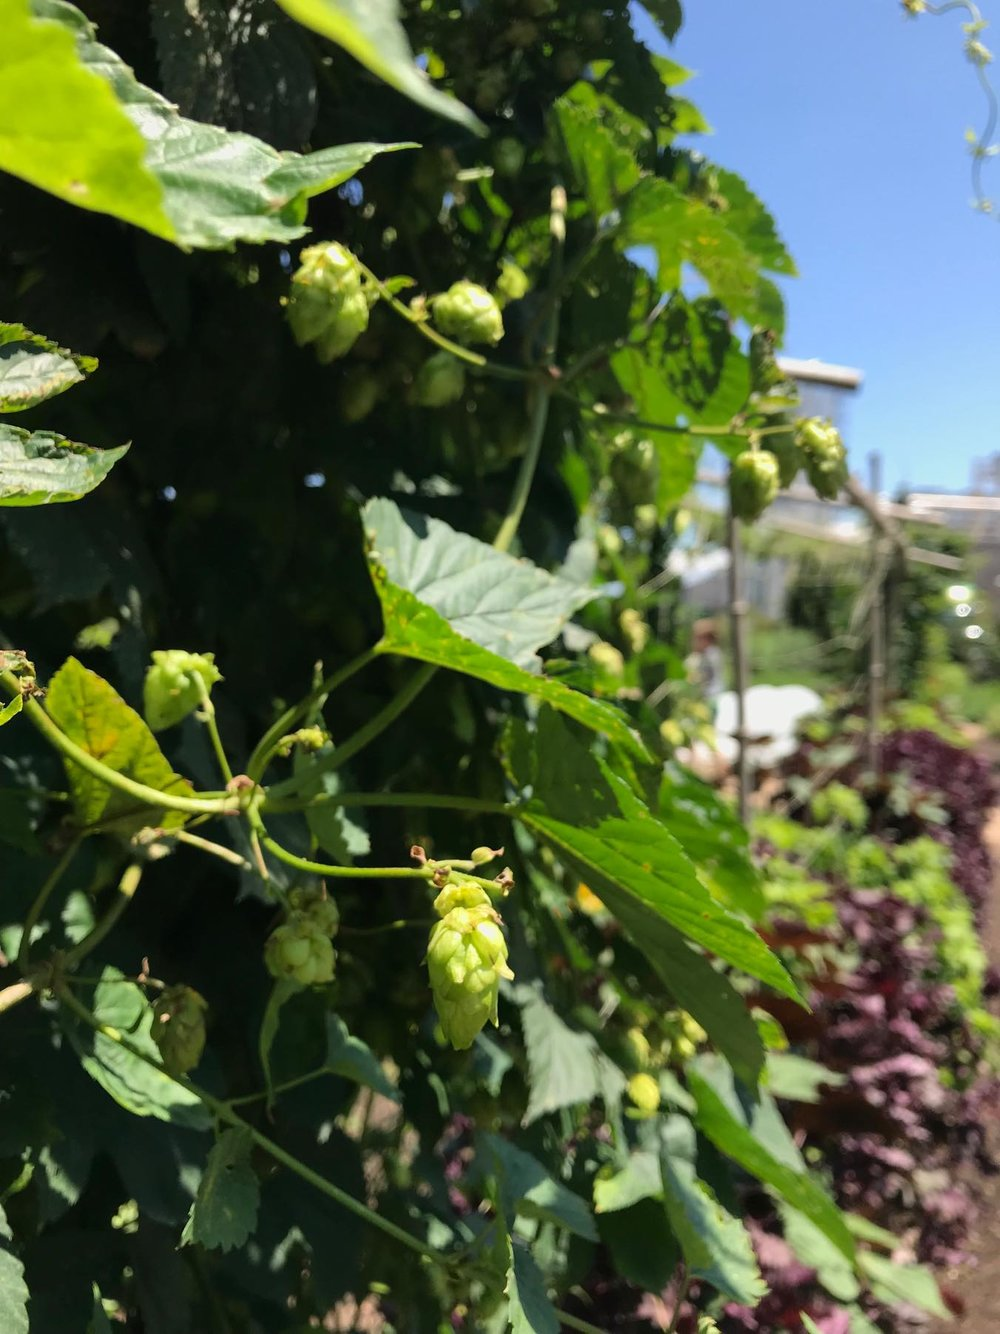 Fresh hops on the vine.